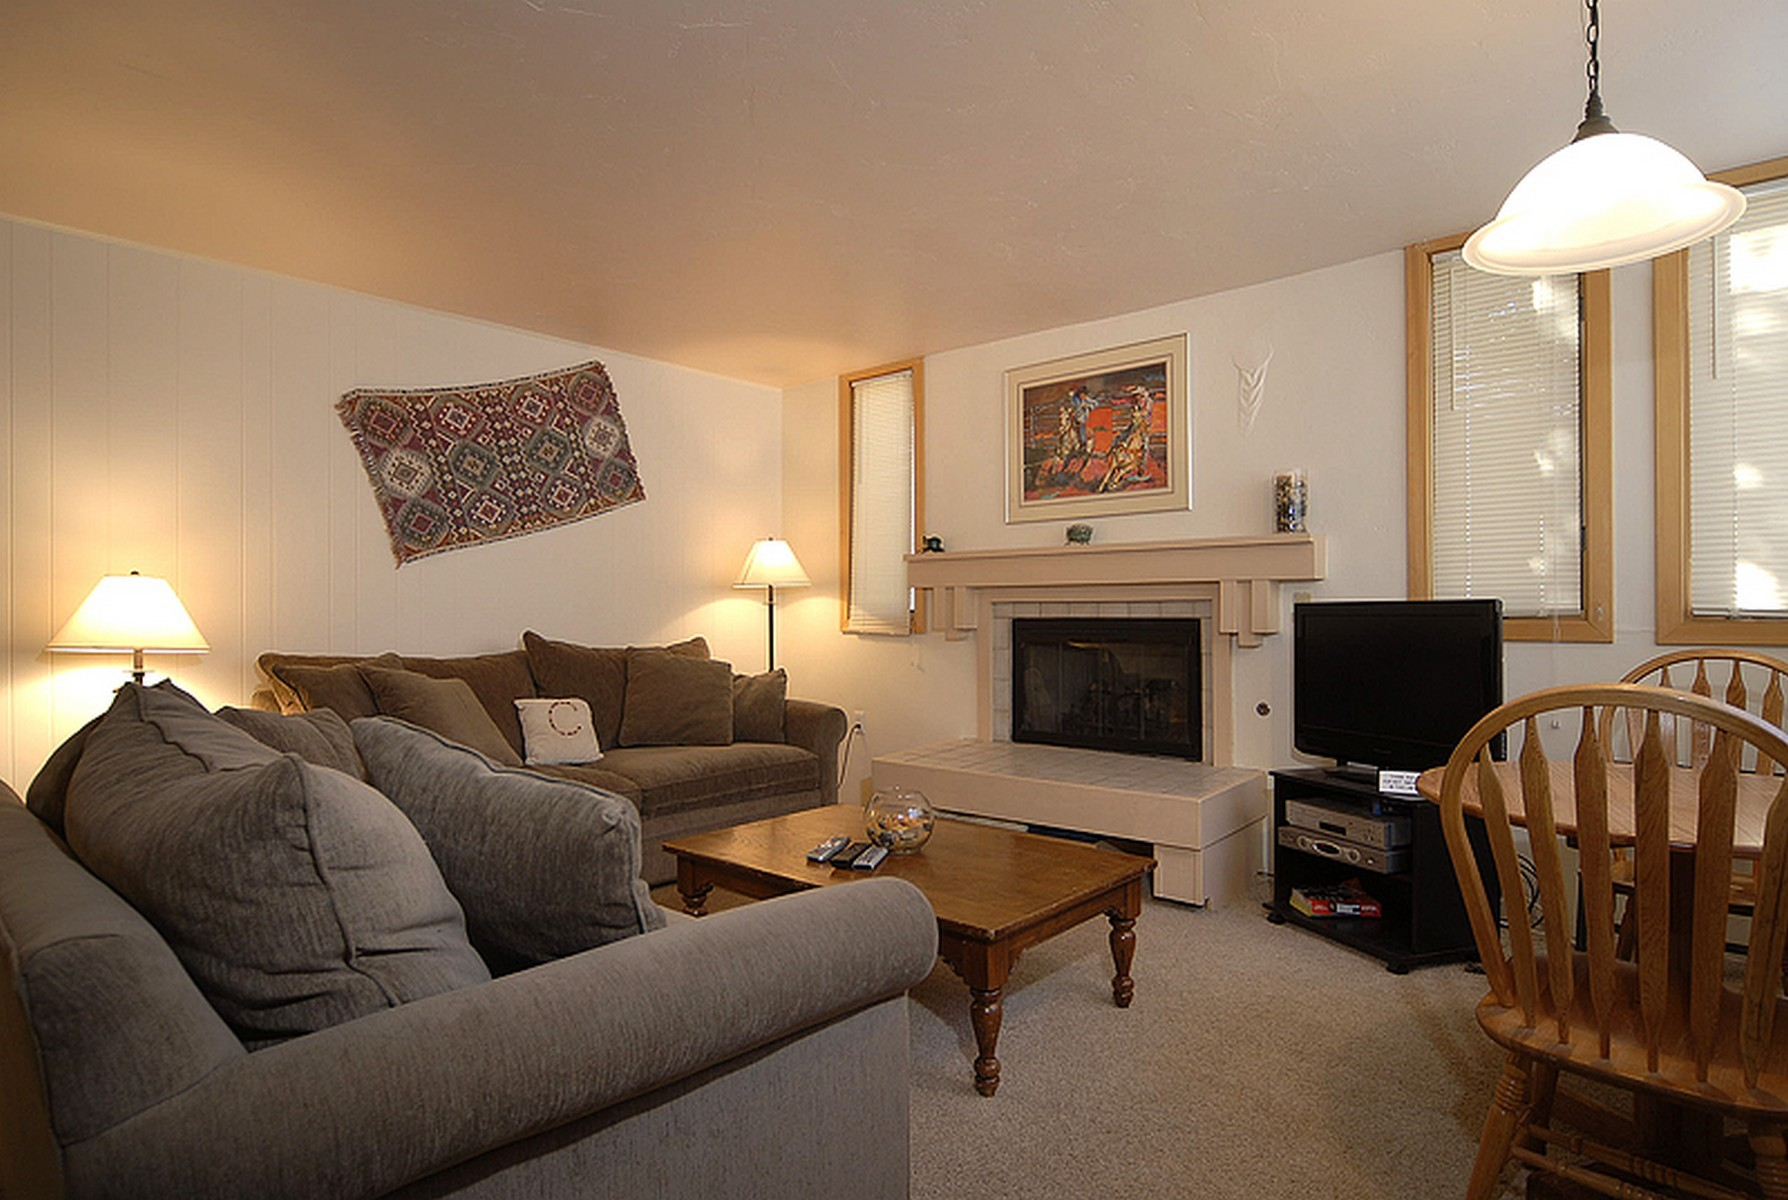 Condominium for Sale at Tamarack Unit 4 135 Carriage Way Unit 4 Snowmass Village, Colorado, 81615 United States